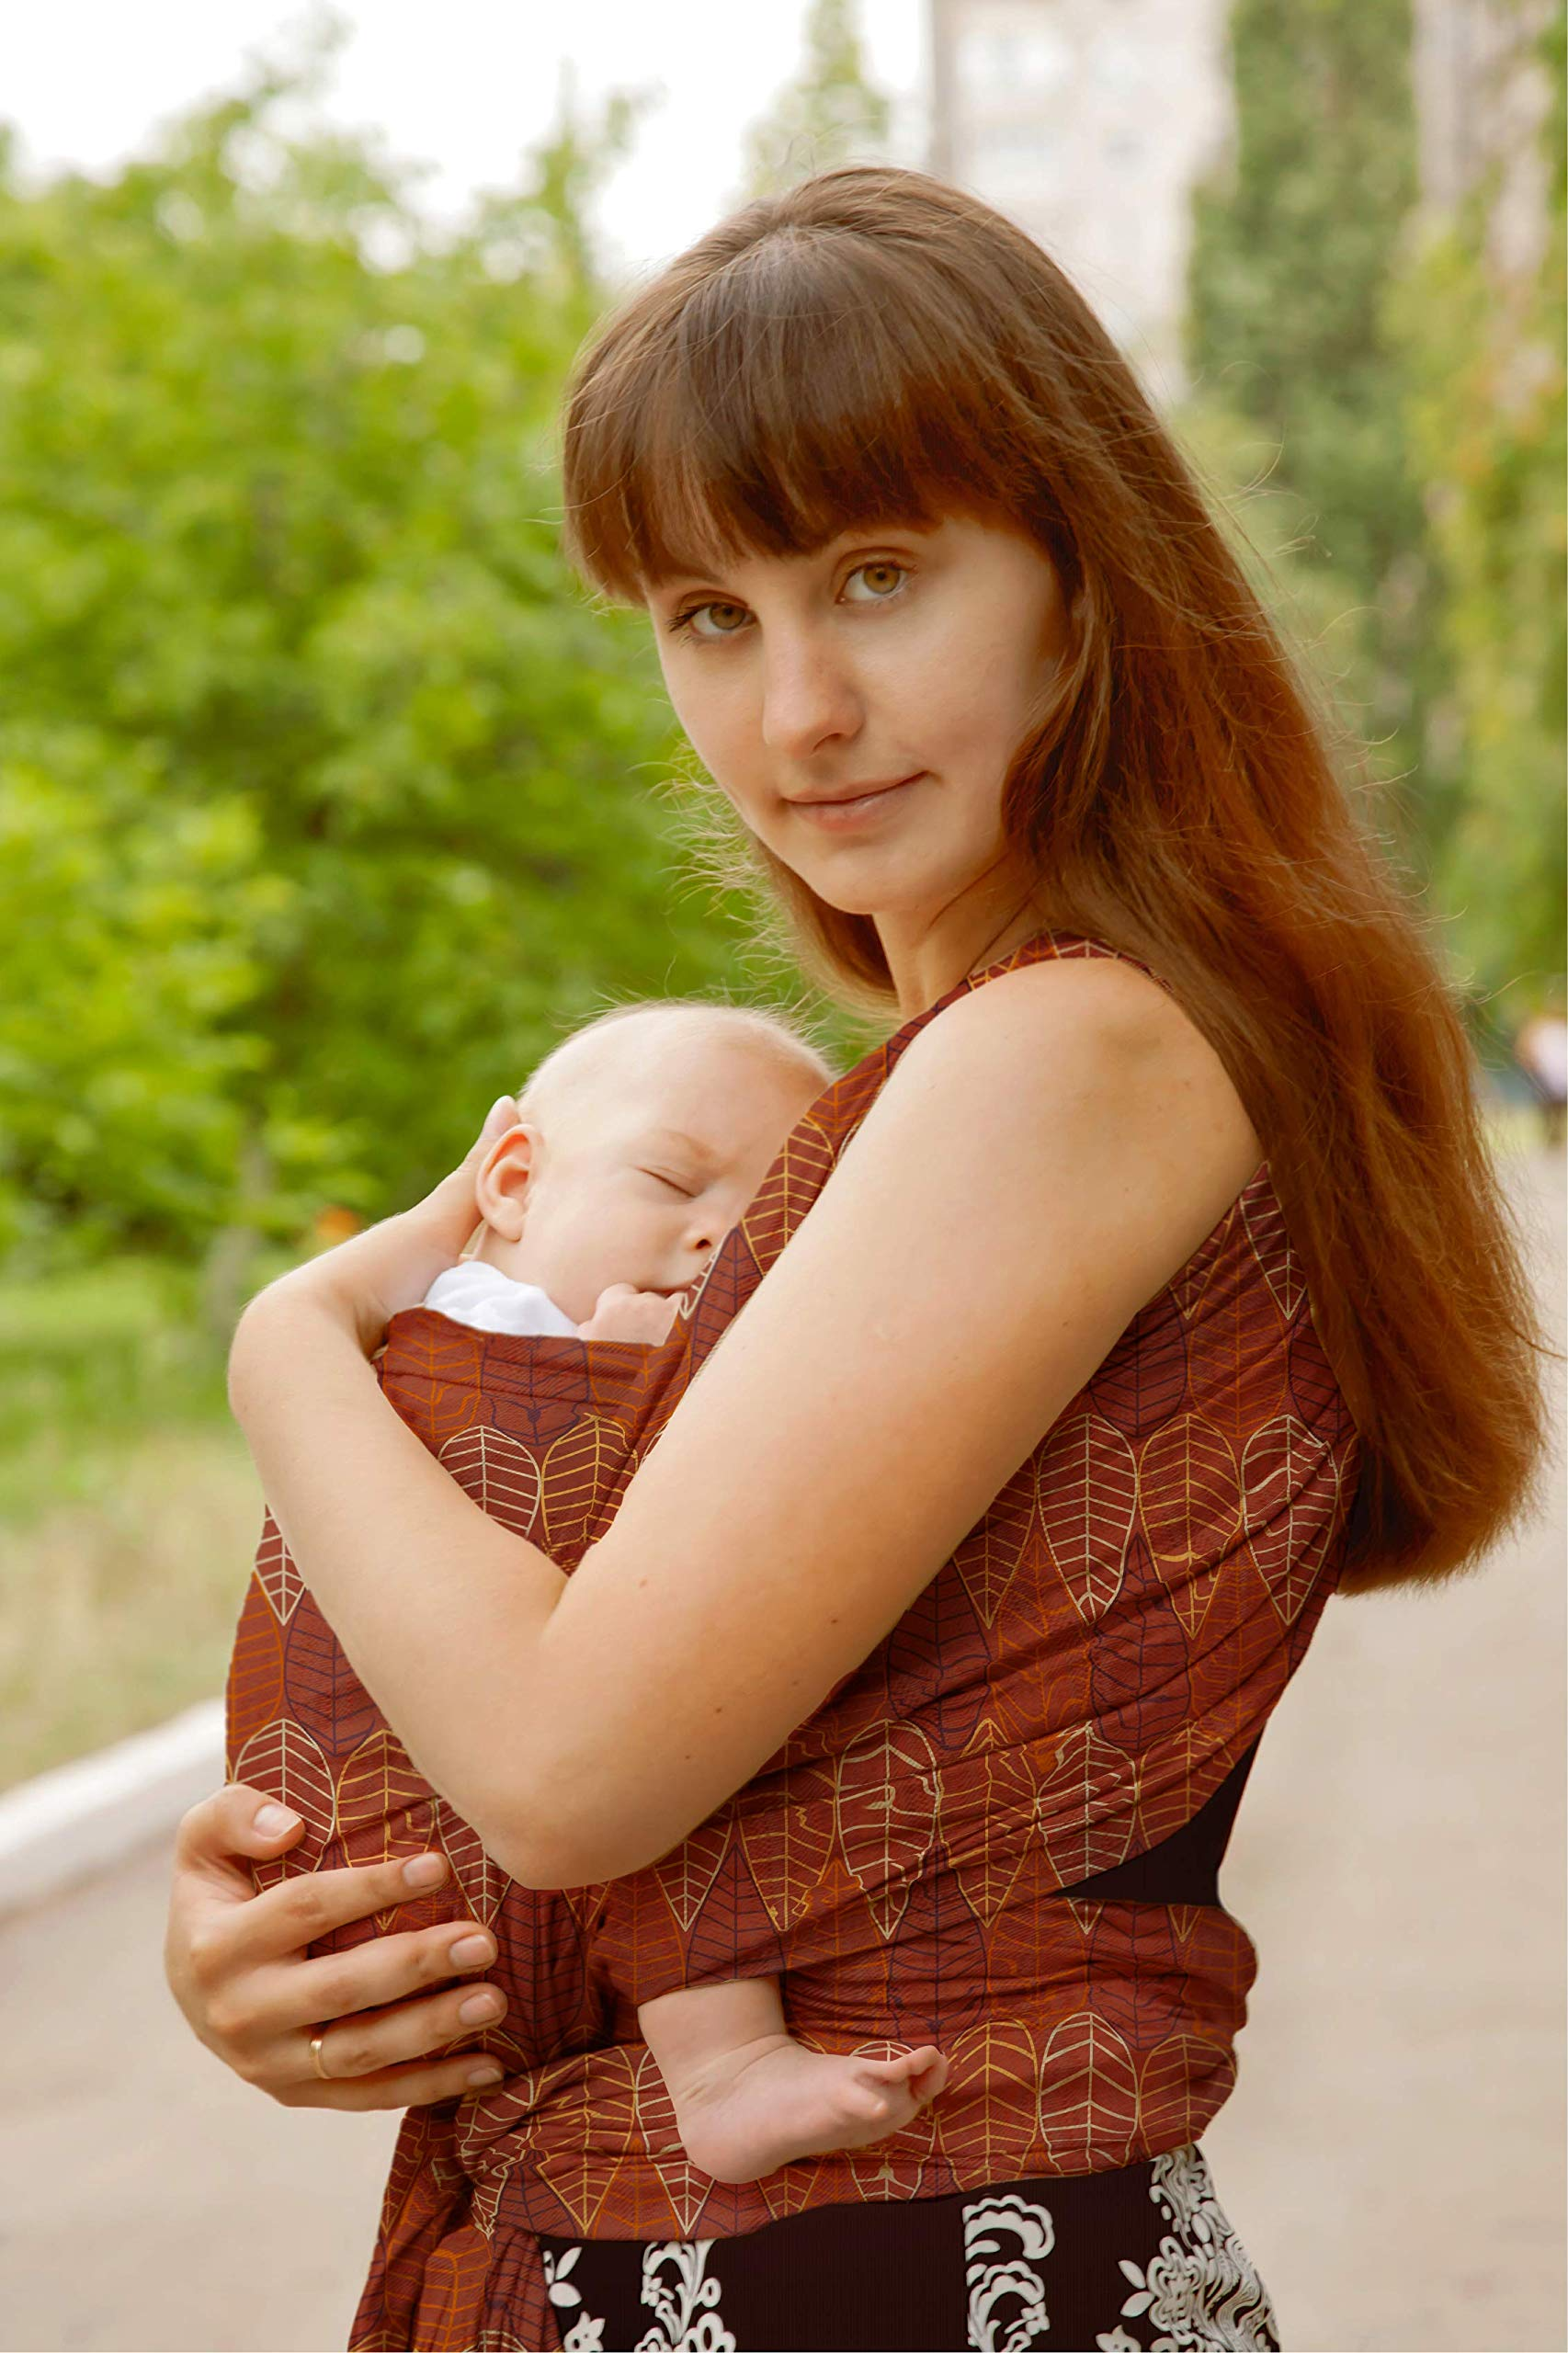 Hypoallergenic GOTS Organic Certified Cotton Baby Wrap Sling Carrier | No Antracene | Certifications: CPSIA, GOTS, CCPA, UK/EU, Safety Tested | Washing & Drying Machine | Newborn | Infant | EU Brand Piccolorganics Certifications: GOTS Organic Cotton, CCPA, CPSIA, CPC, EN 1462. EU/UK Regulation. Weight and resistance certification. For 6lb/2.7kg - 35 lbs/16kg - For Newborns up to 2 years old. European Brand. 520cm x 55cm The PiccolOrganics organic baby wraps are manufactured with premium materials to ensure years of use, through repeated washes and drying cycles. Even better, you can use it in the Washing and Drying machine! 2